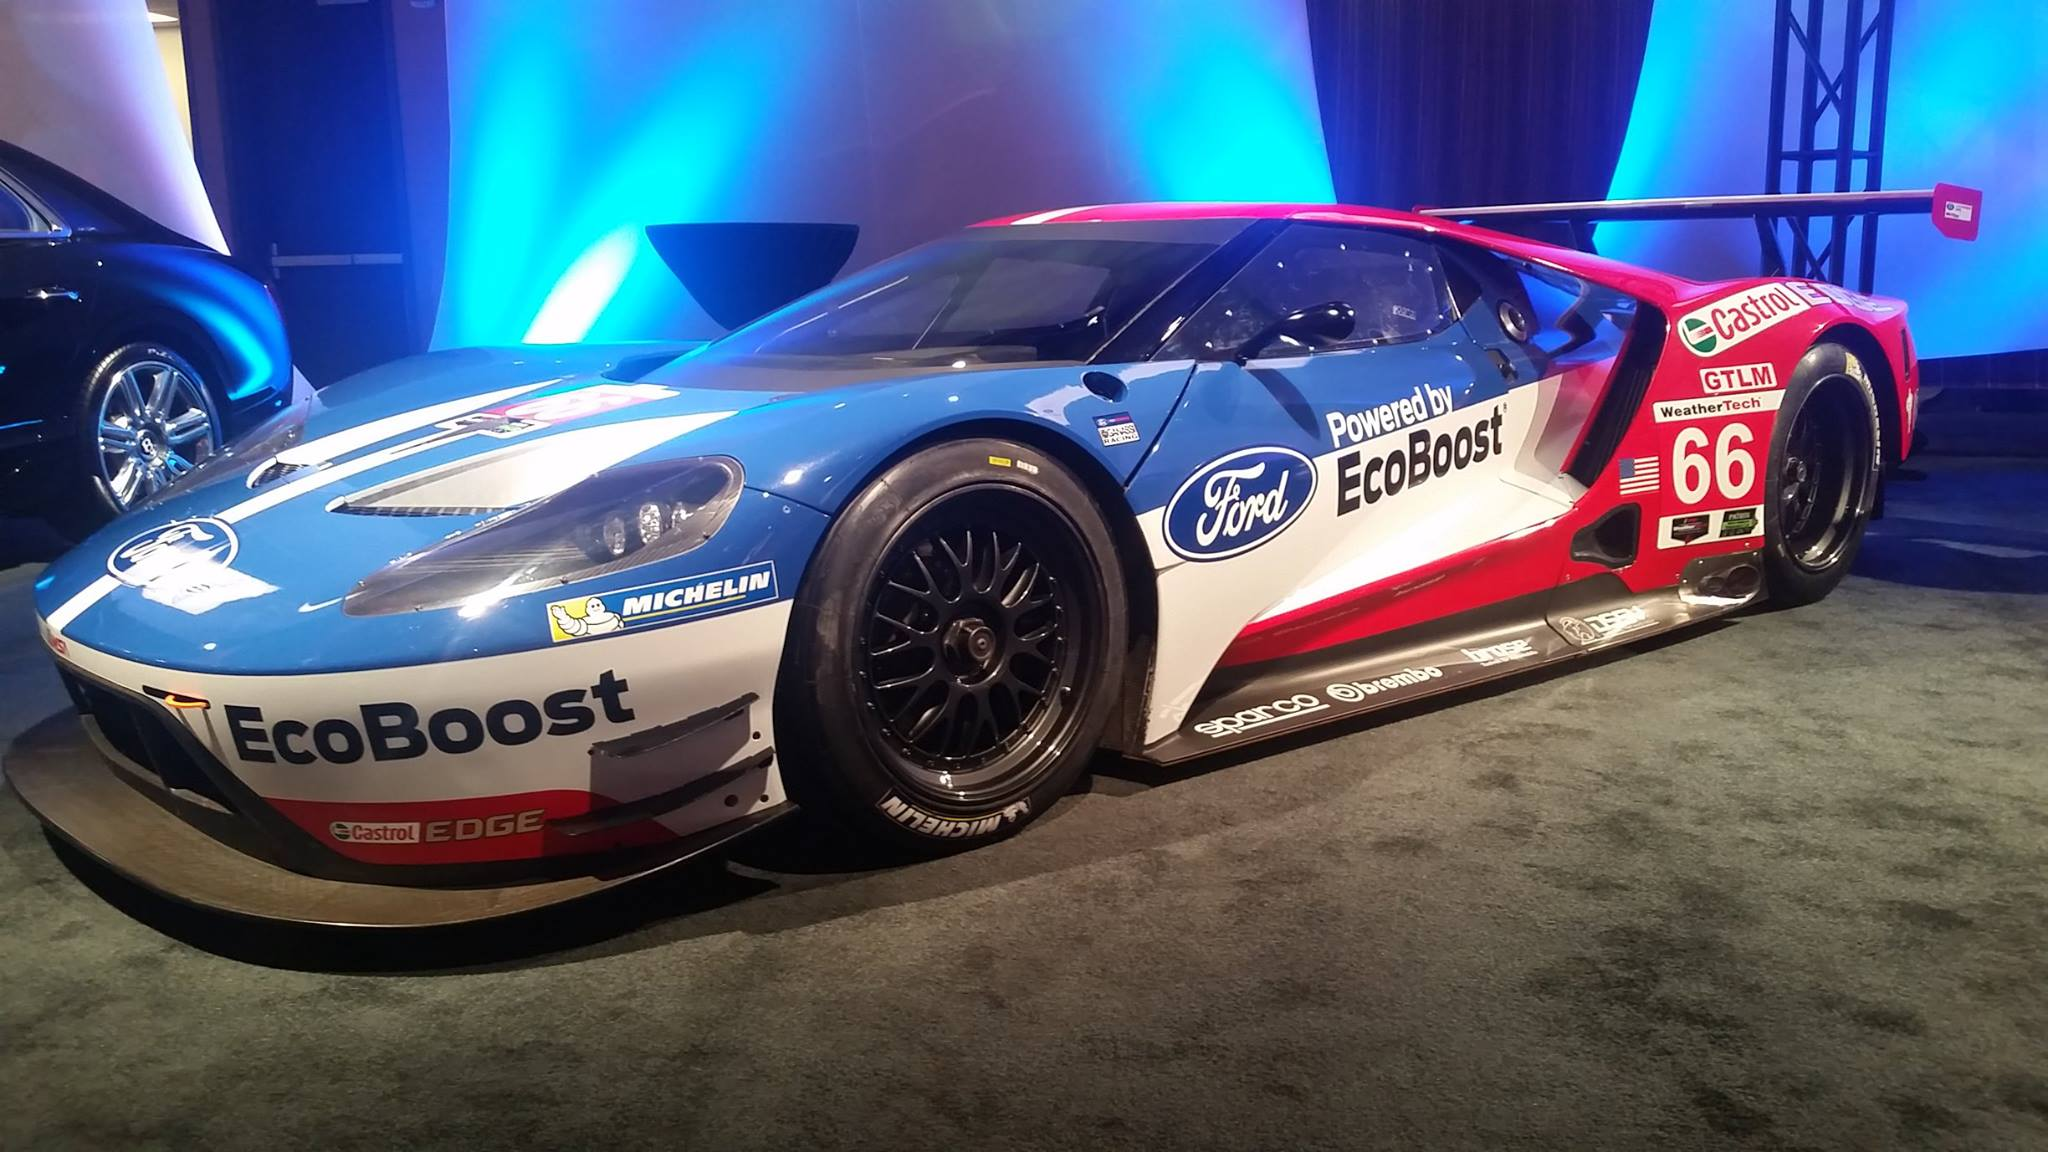 Ford GT - The Gallery - event - NAIAS 2016